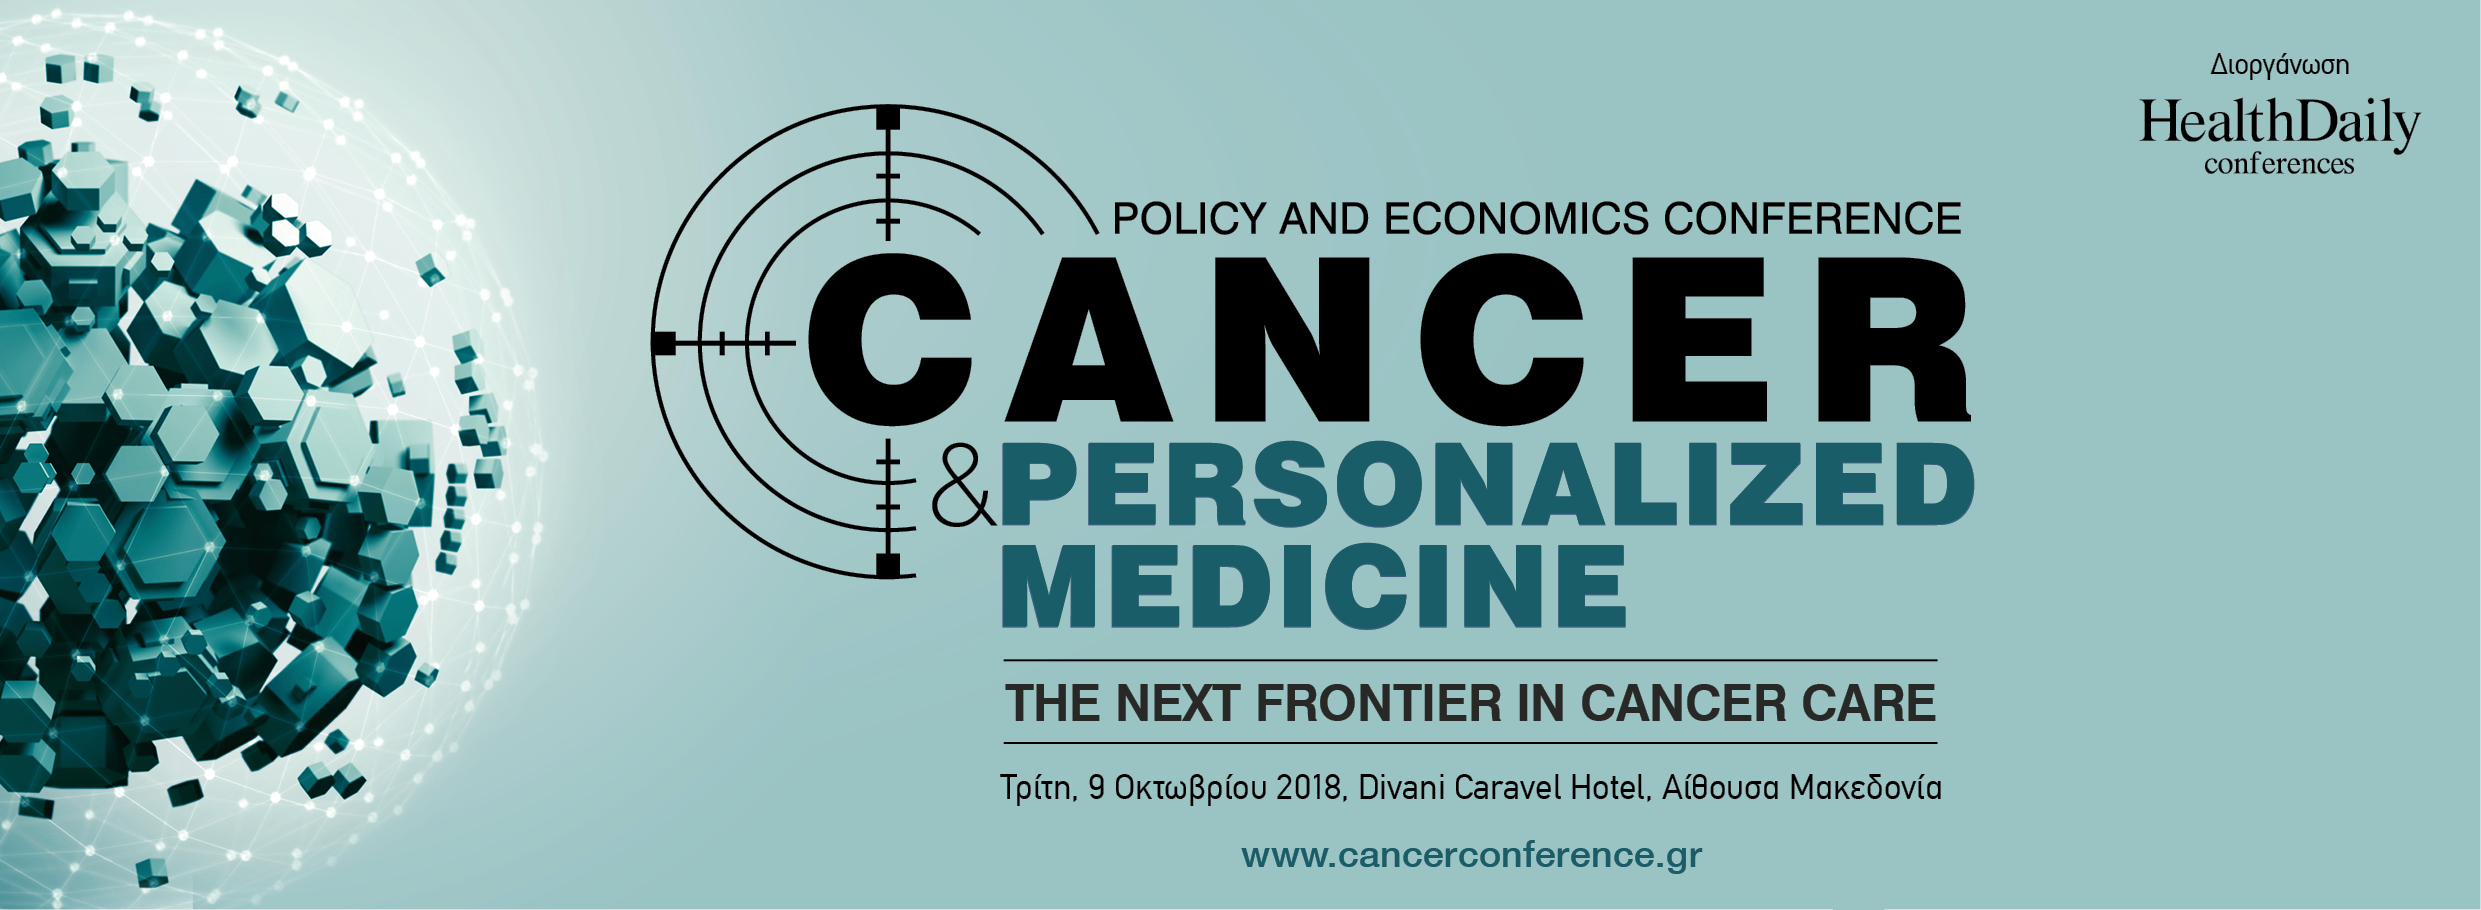 CANCER PERSONALIZED MEDICINE VISUAL